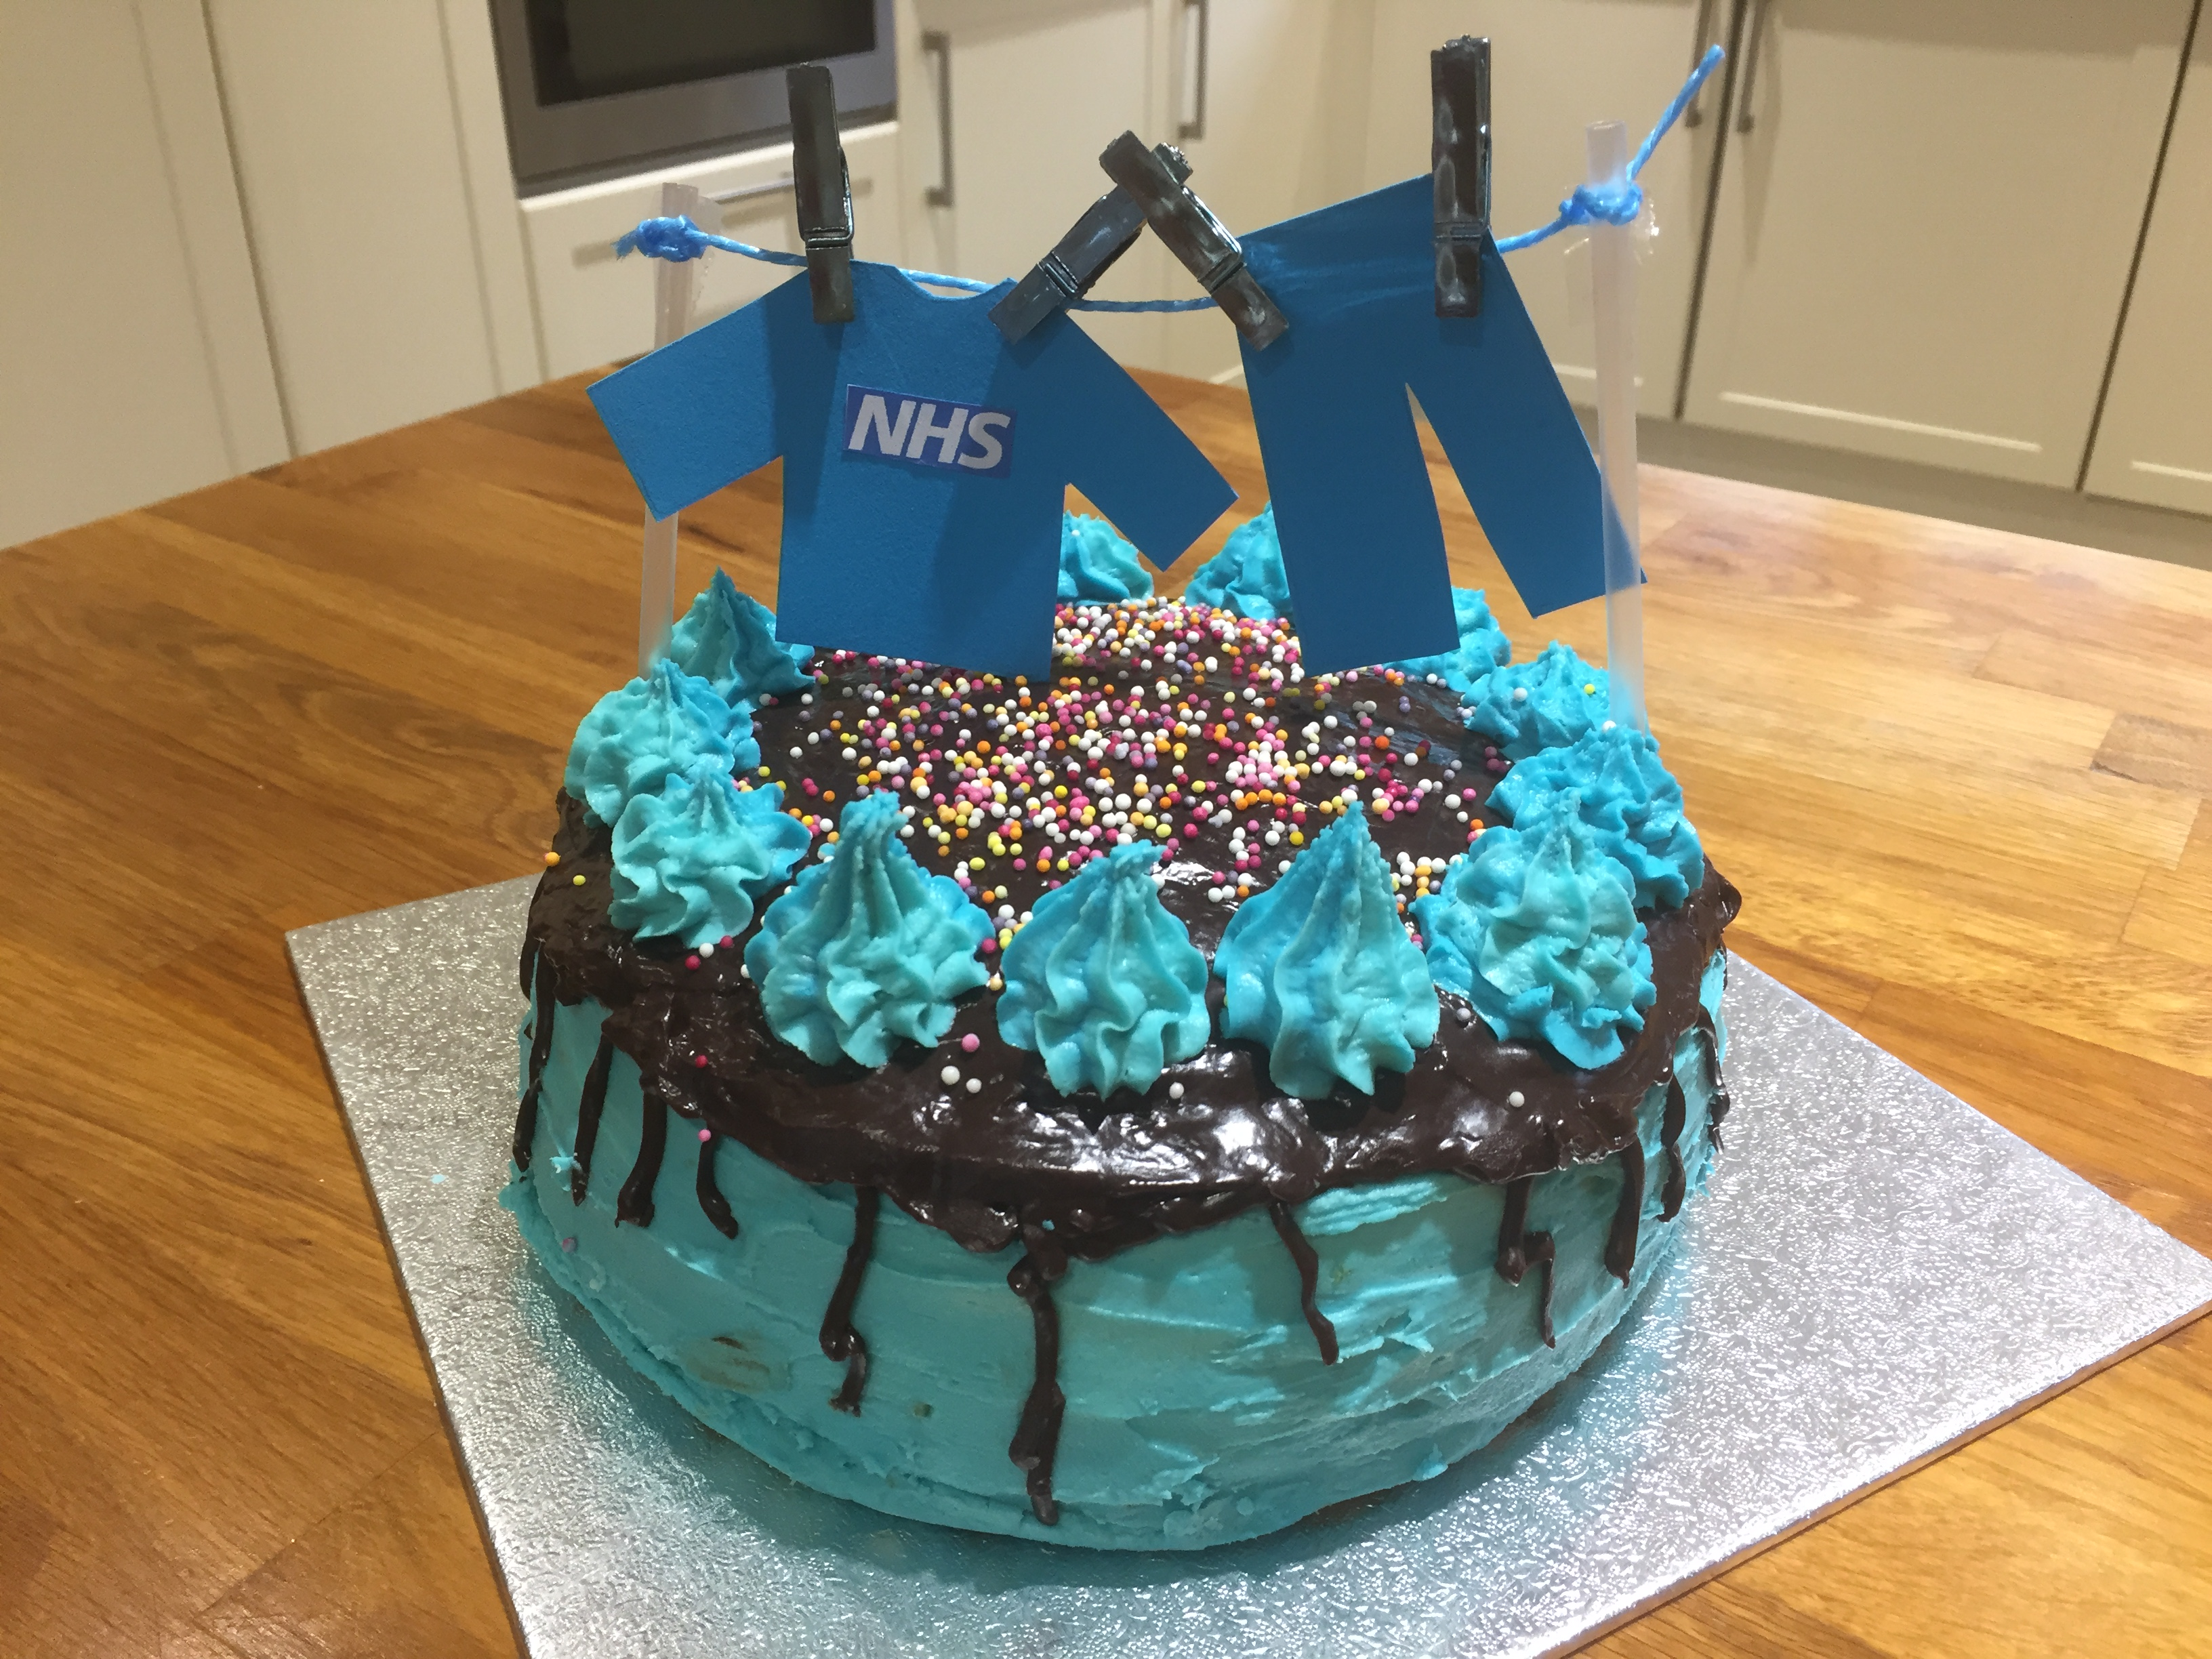 NHS cake by Towcester Evening WI